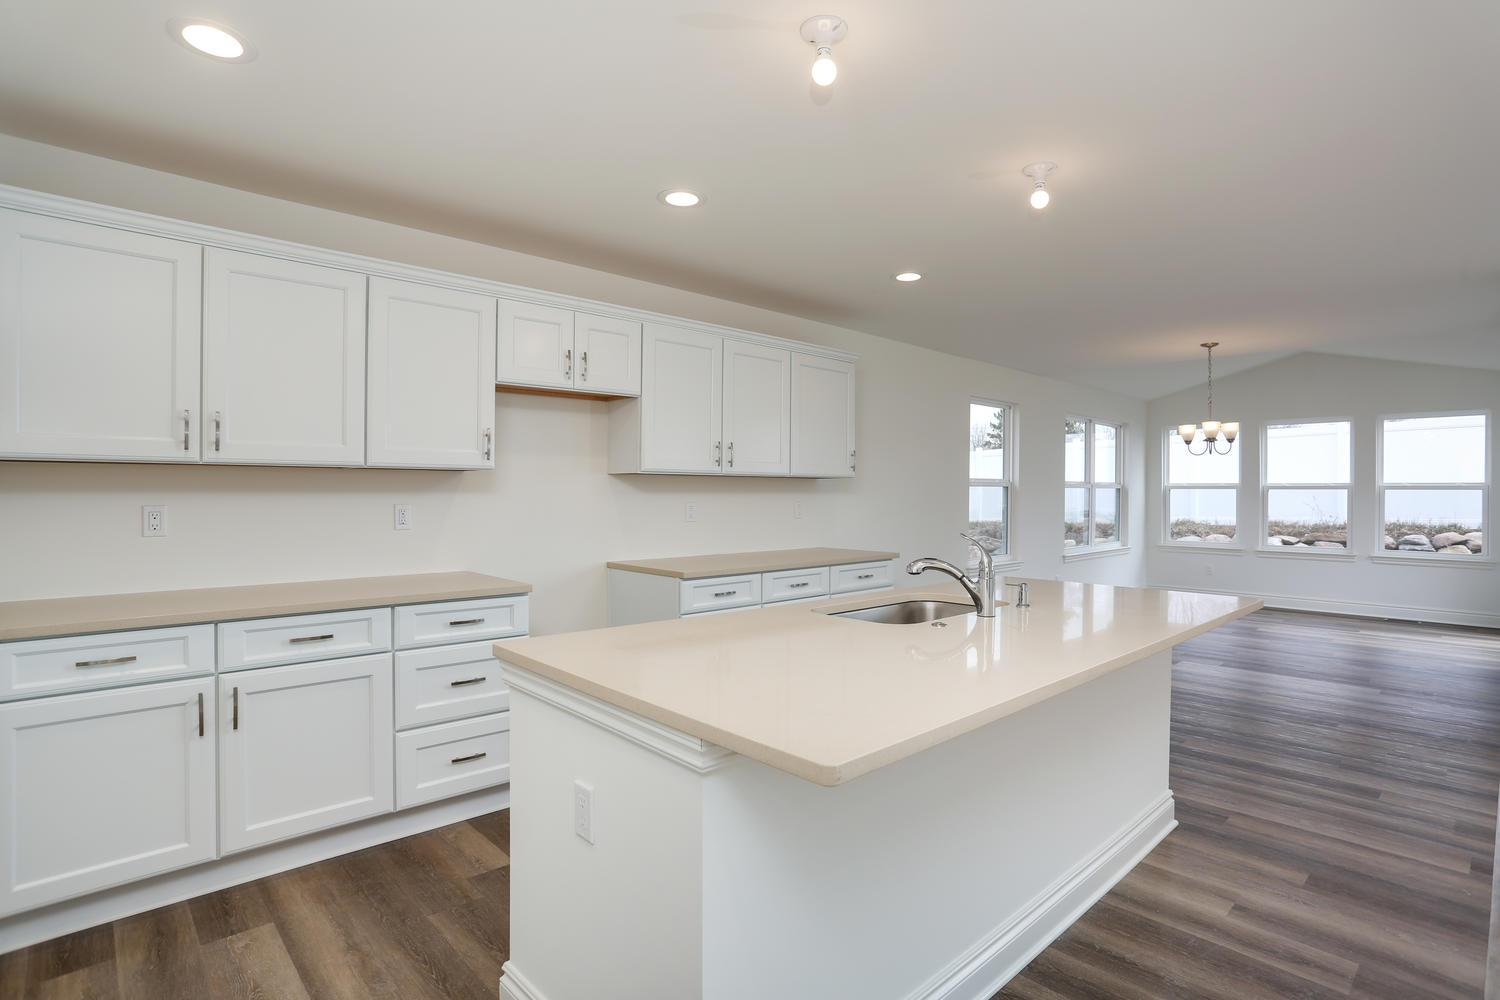 Kitchen featured in the Richmond at Lakeview By Robertson Brothers  in Detroit, MI